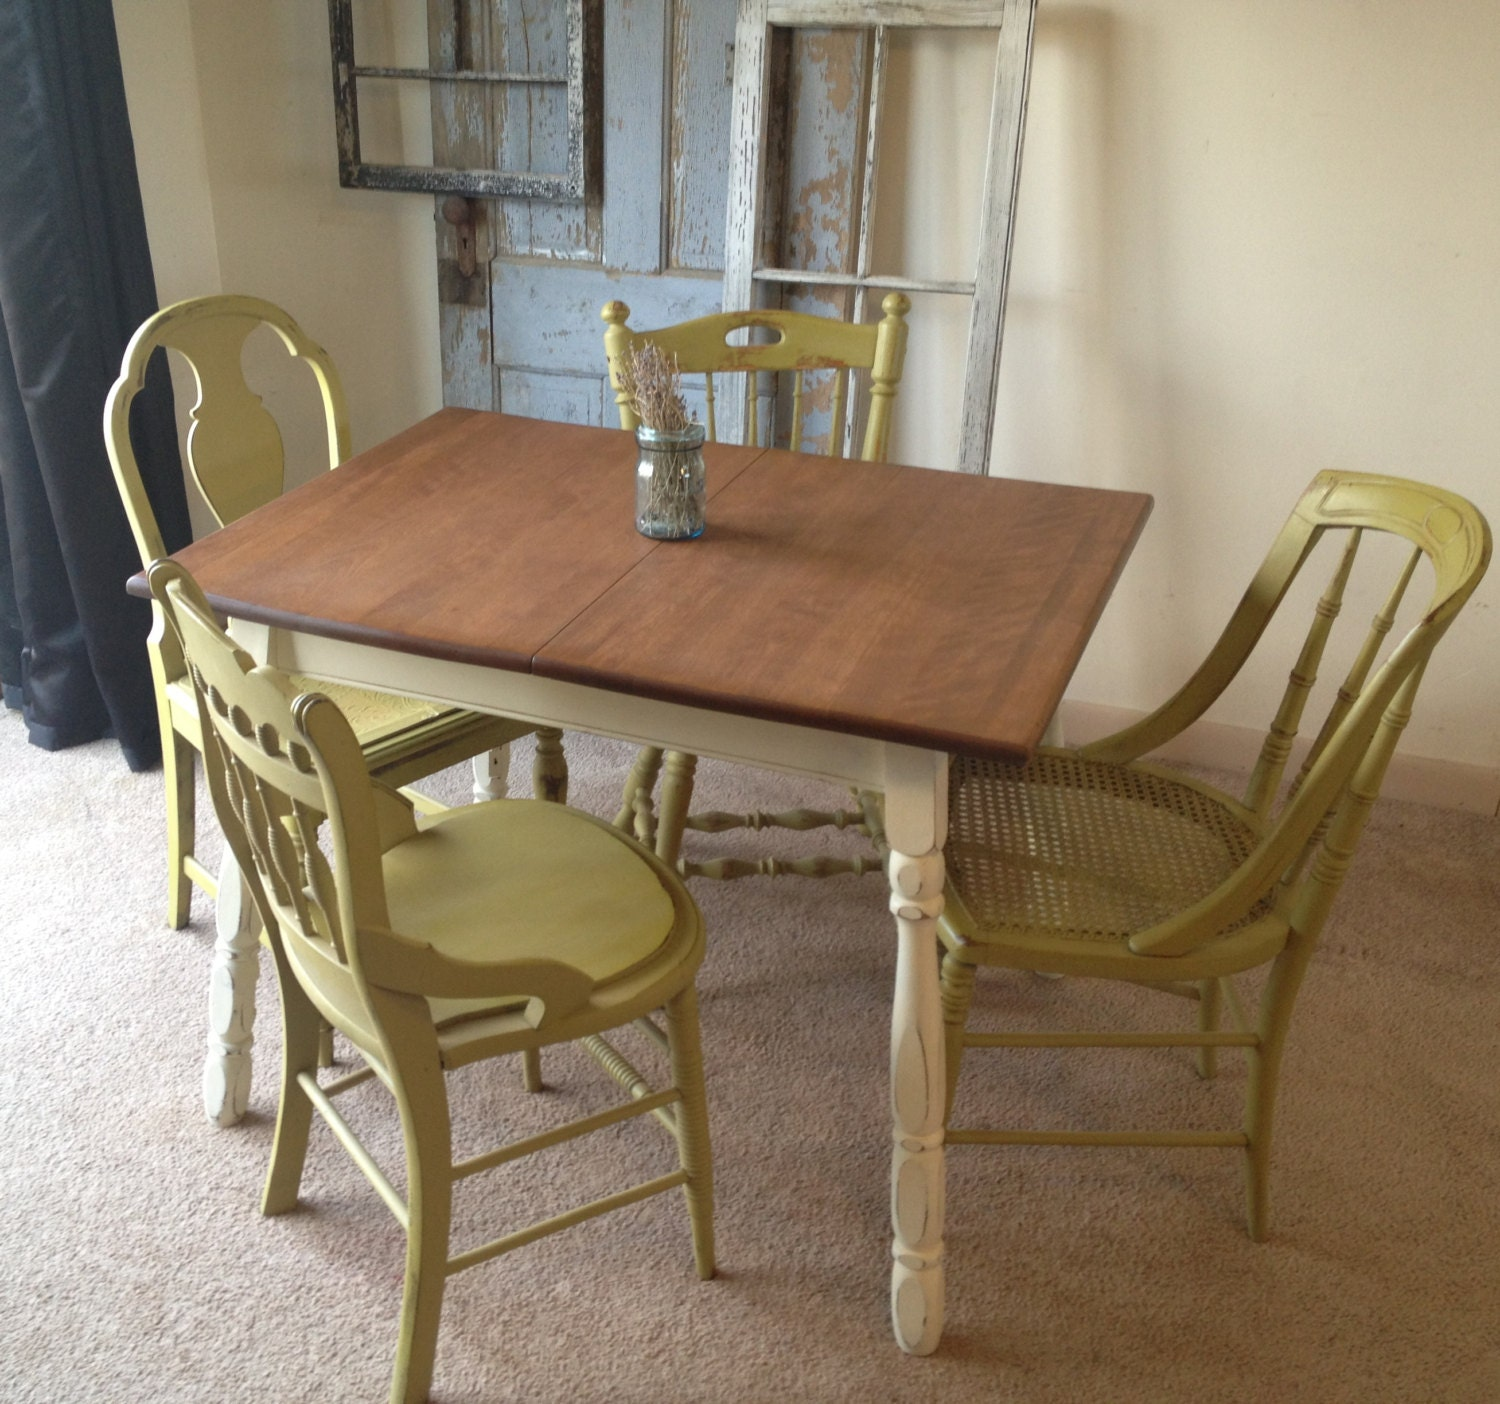 Vintage French Provincial/Country Kitchen Table with Four Miss